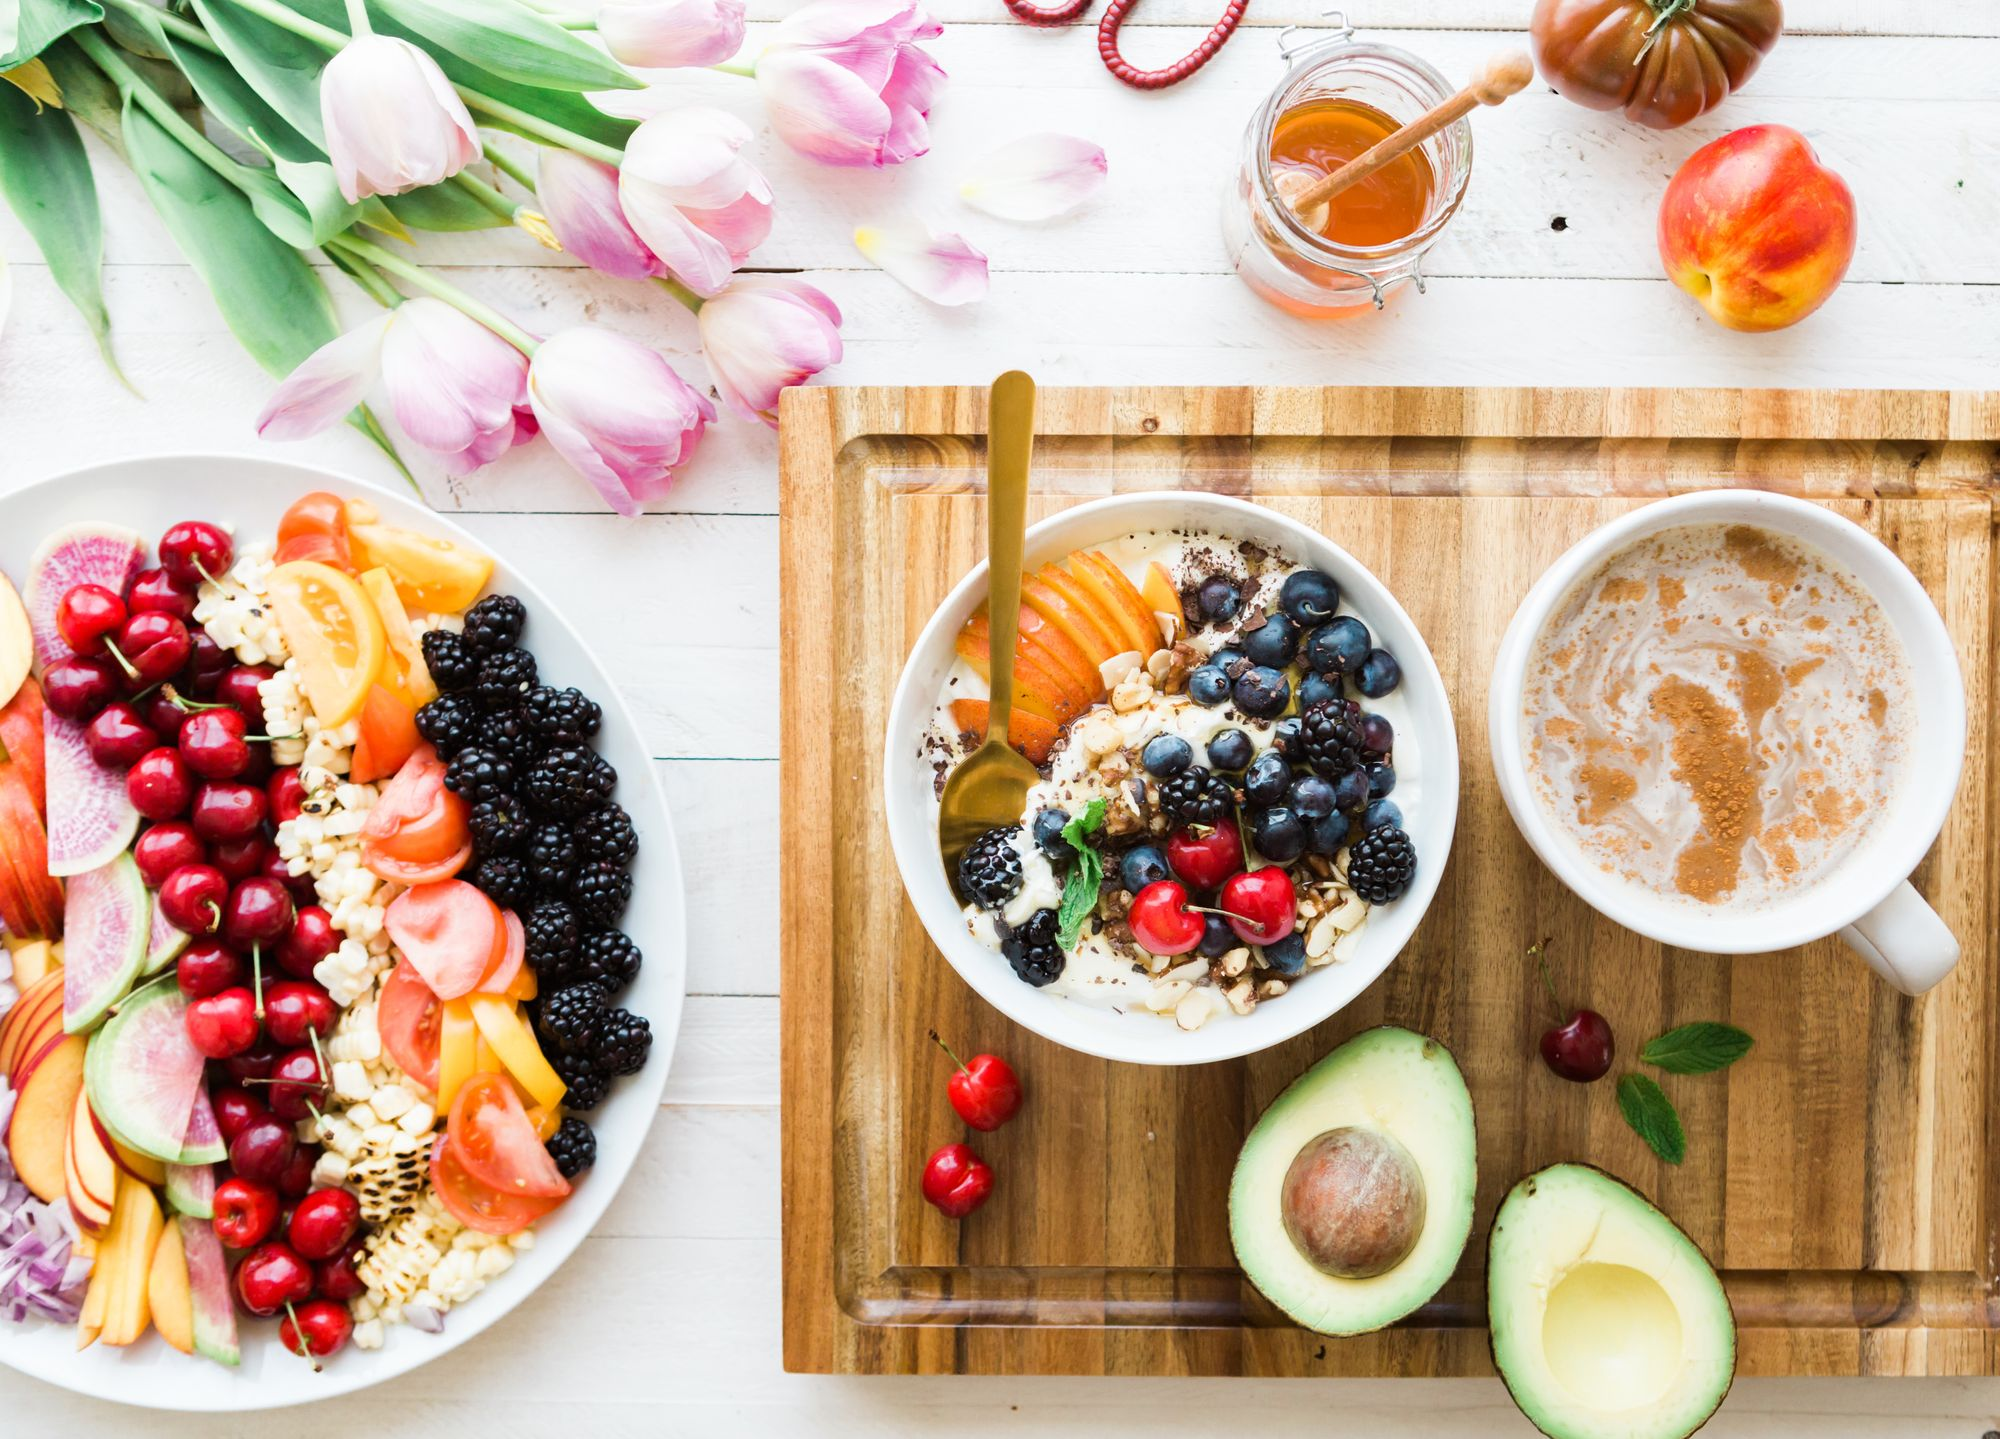 Food based nutrition business